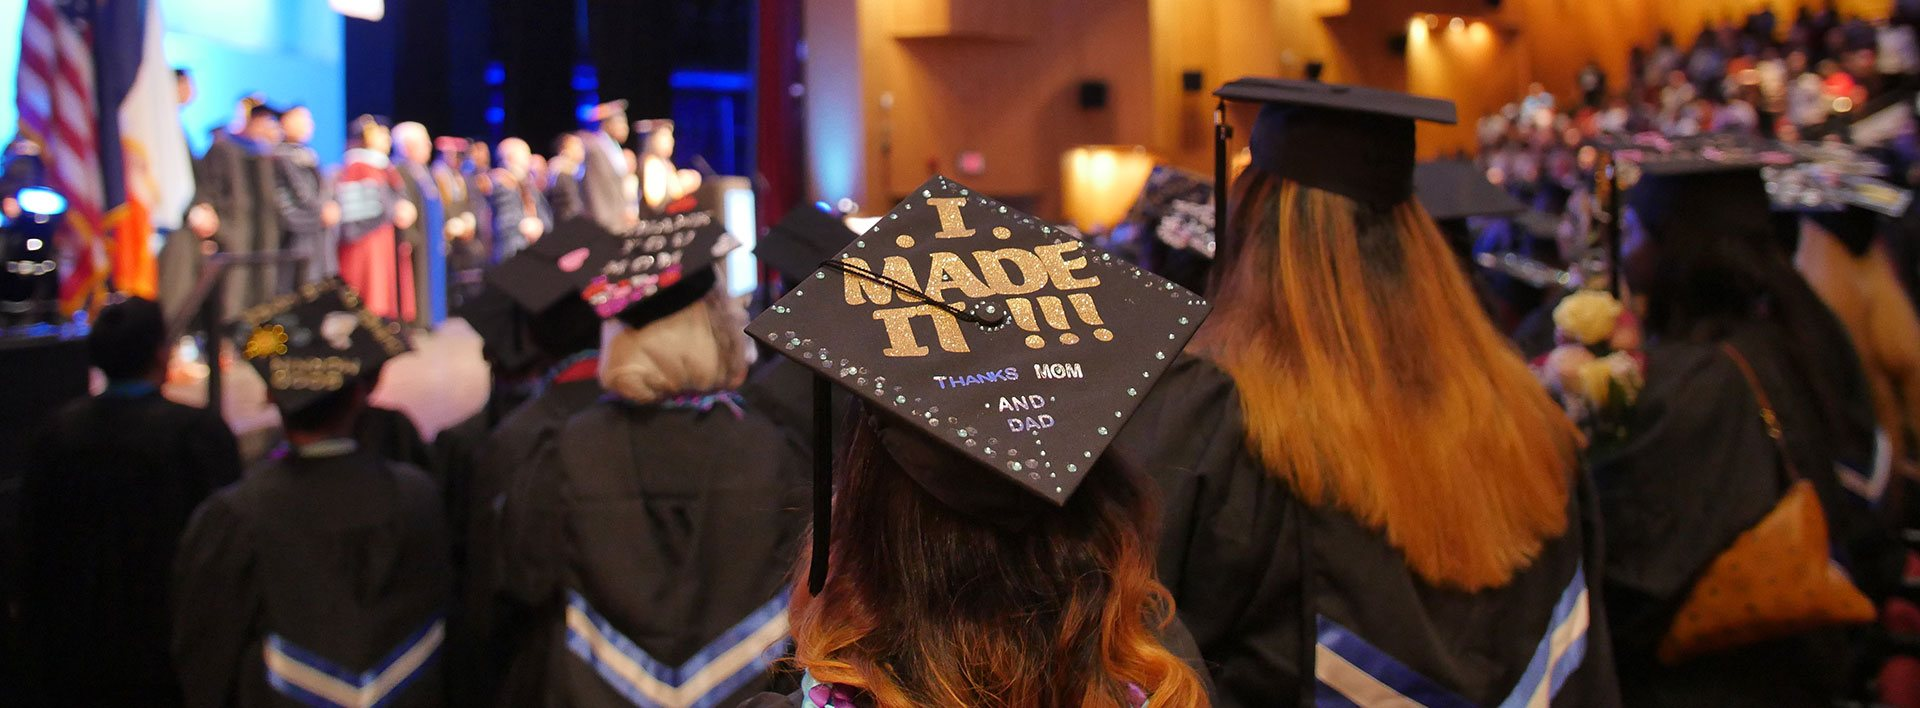 Commencement photo of a young woman's cap featuring the words